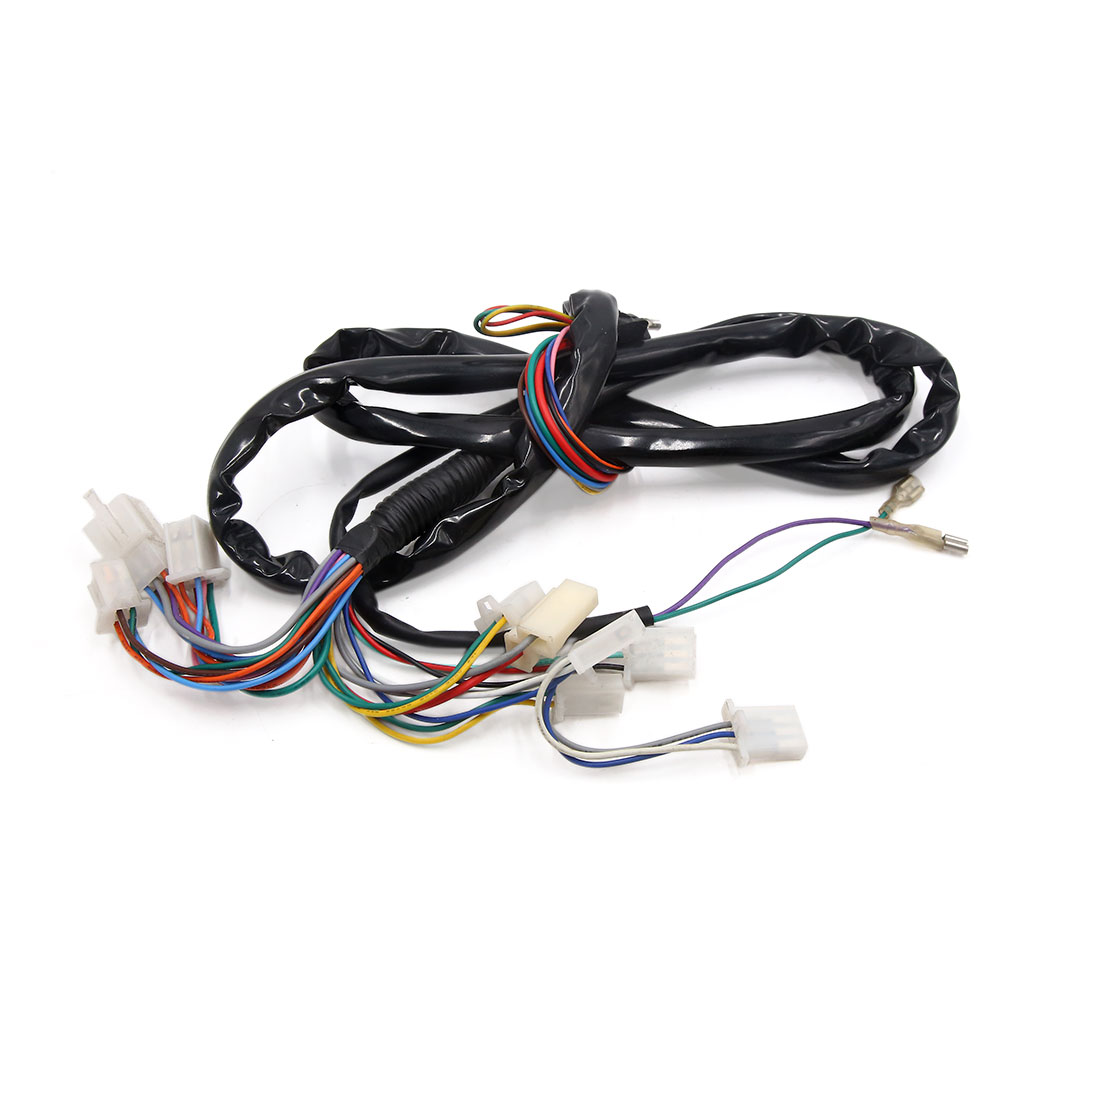 174cm Length Black Main Wiring Harness for Motorcycle Electrical Scooter -  Walmart.com - Walmart.comWalmart